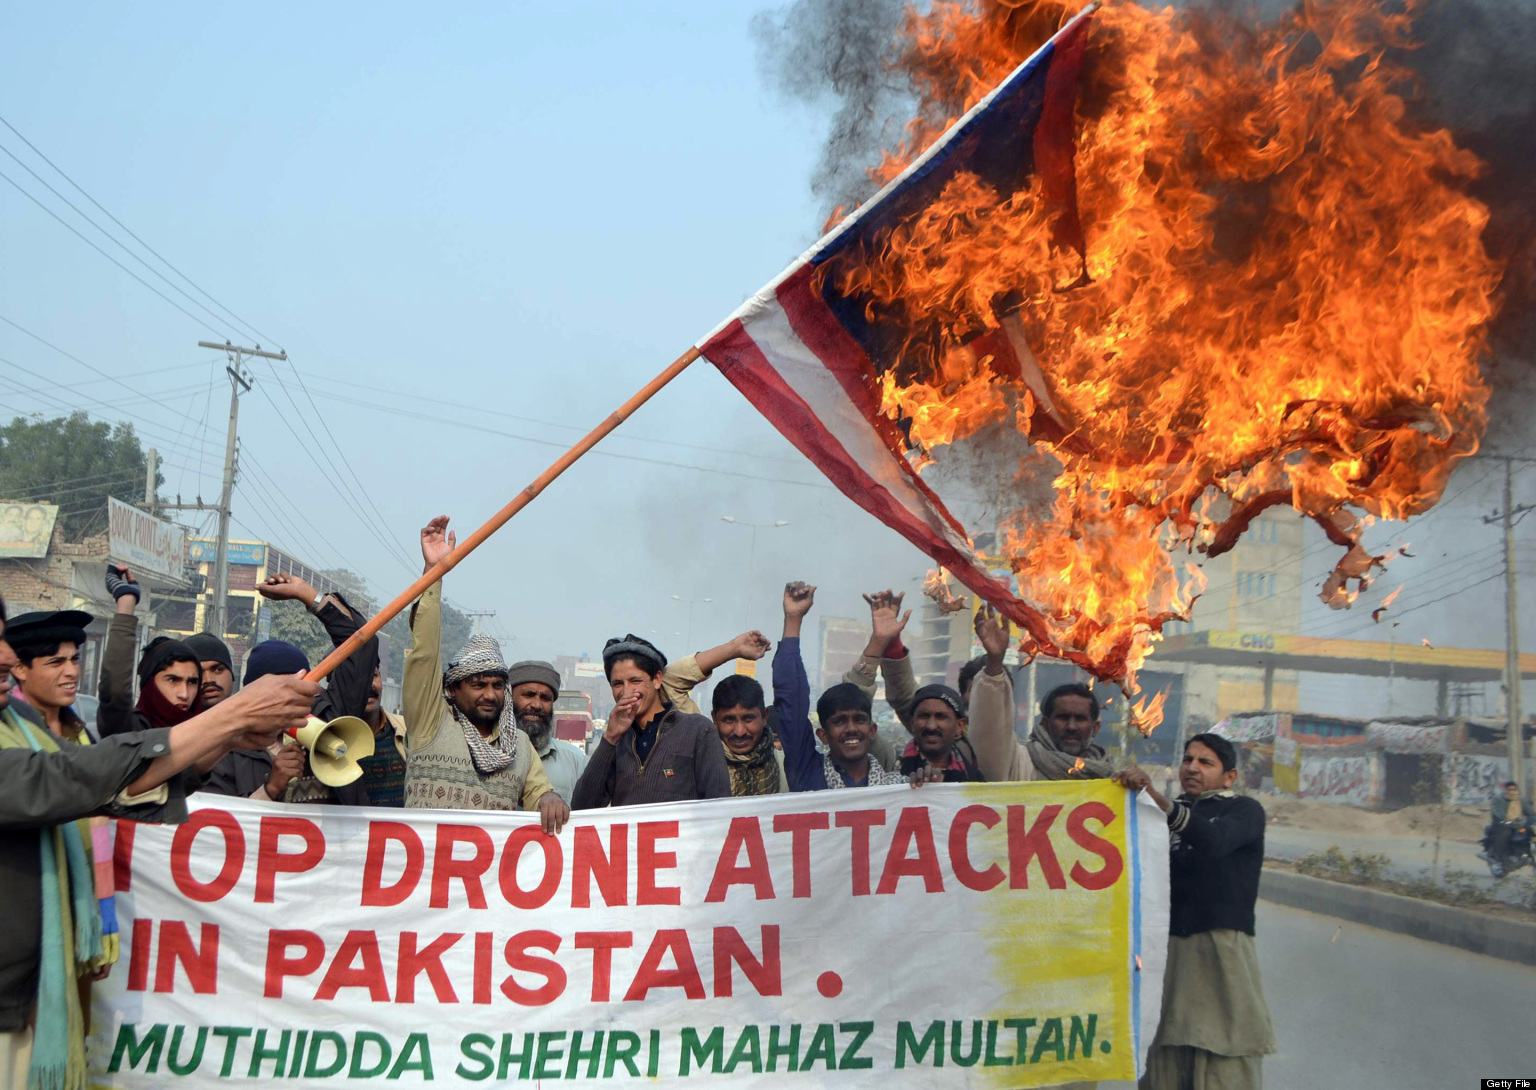 essay on drone attacks in pakistan A new study found that because of the many unintended civilian casualties, us drone attacks against terrorist targets in pakistan have been an.